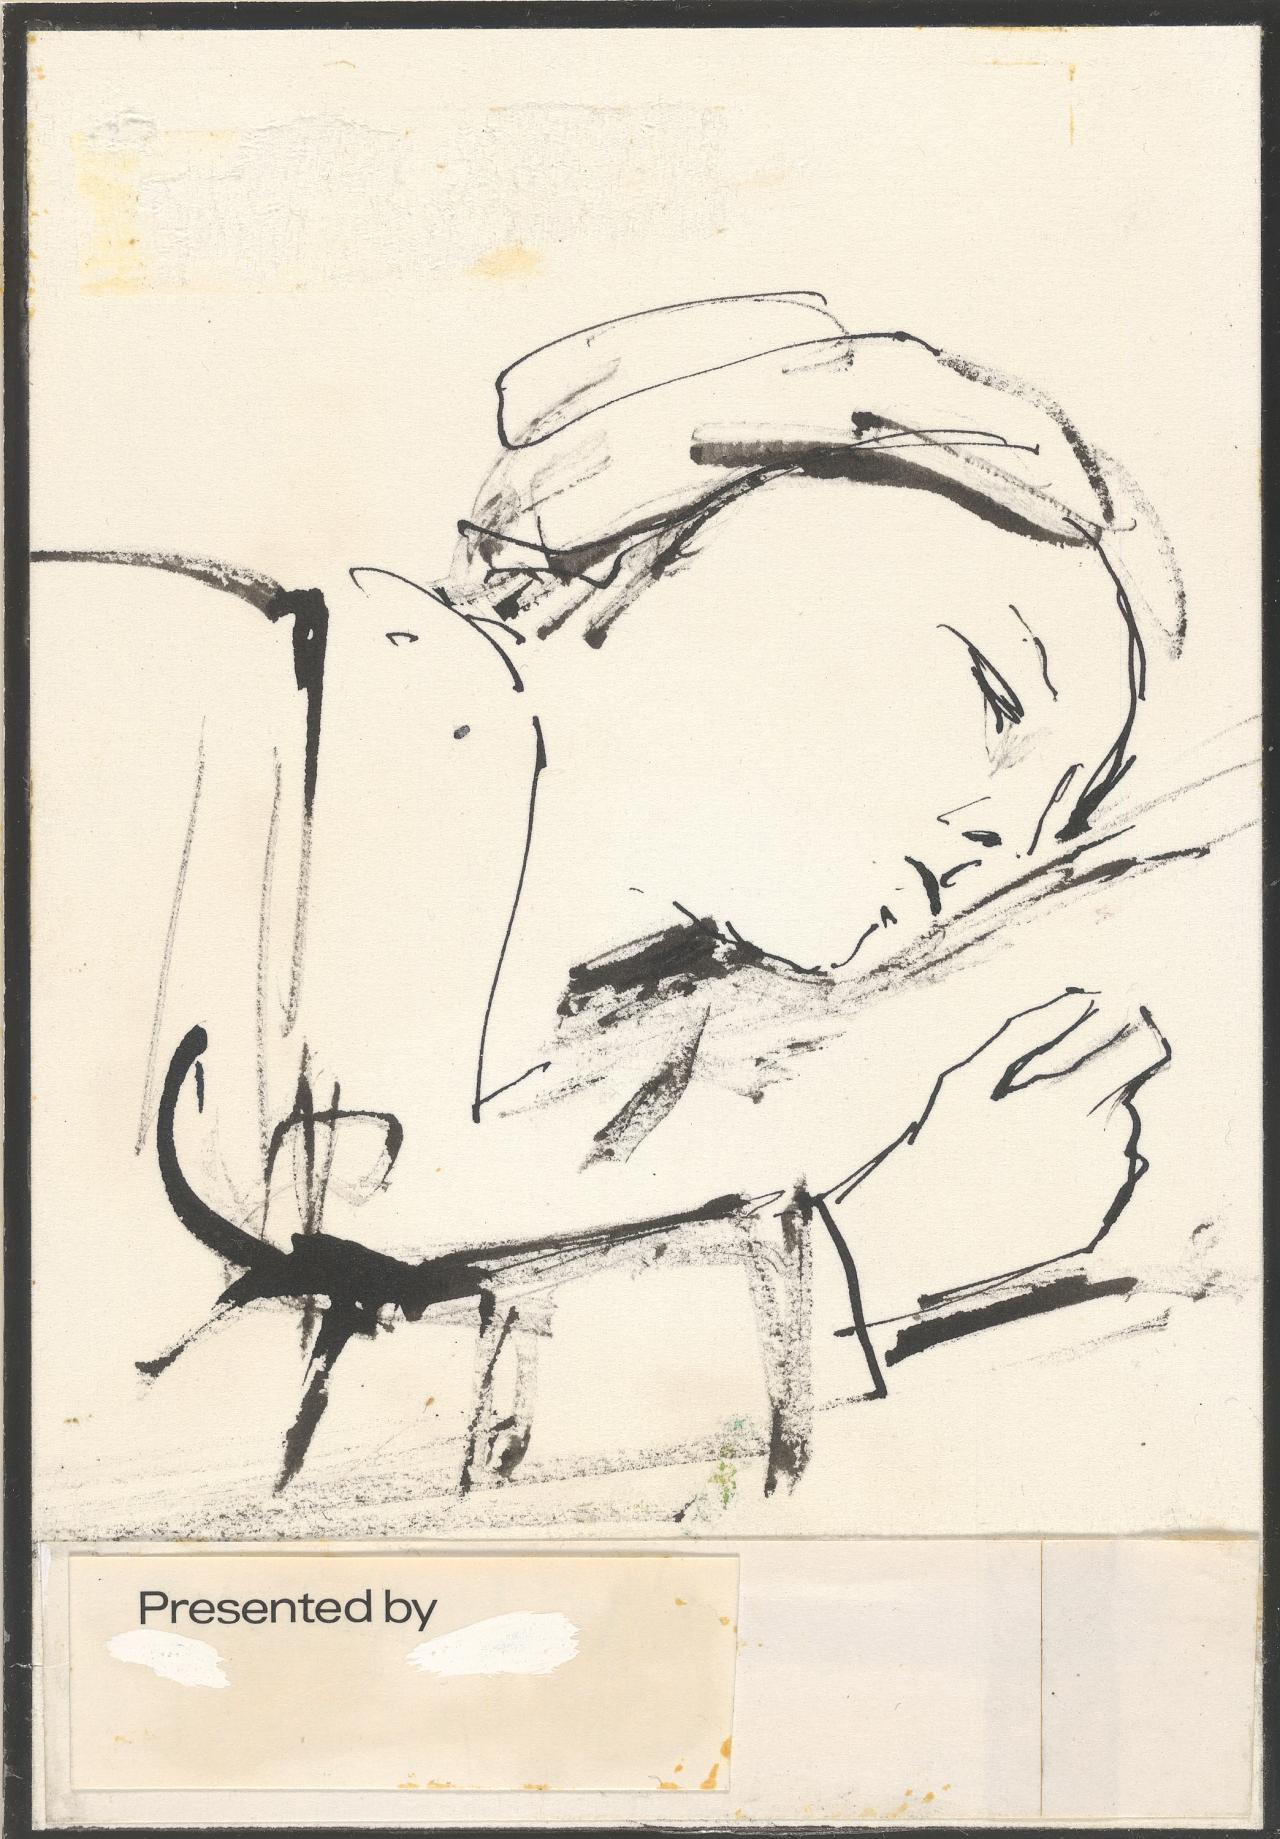 (Sleeping woman: Design for NGV Library bookplate)